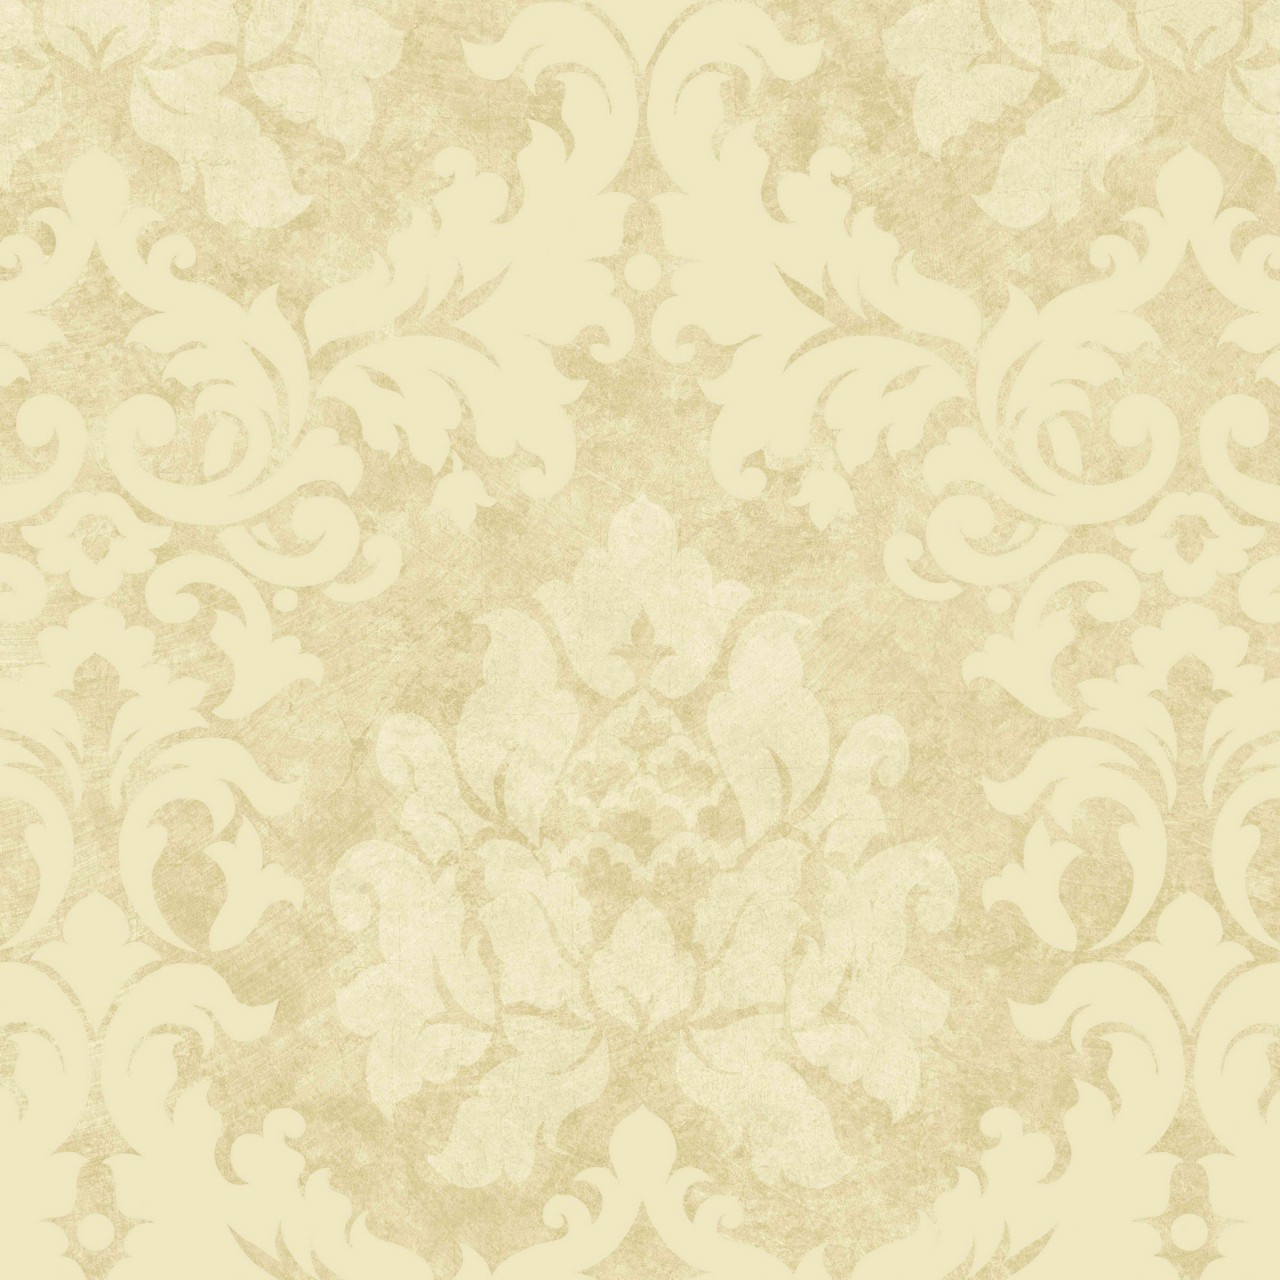 Beige Tan Damask Leaves Wallpaper Traditional Wallpaper   Dark Brown 1280x1280